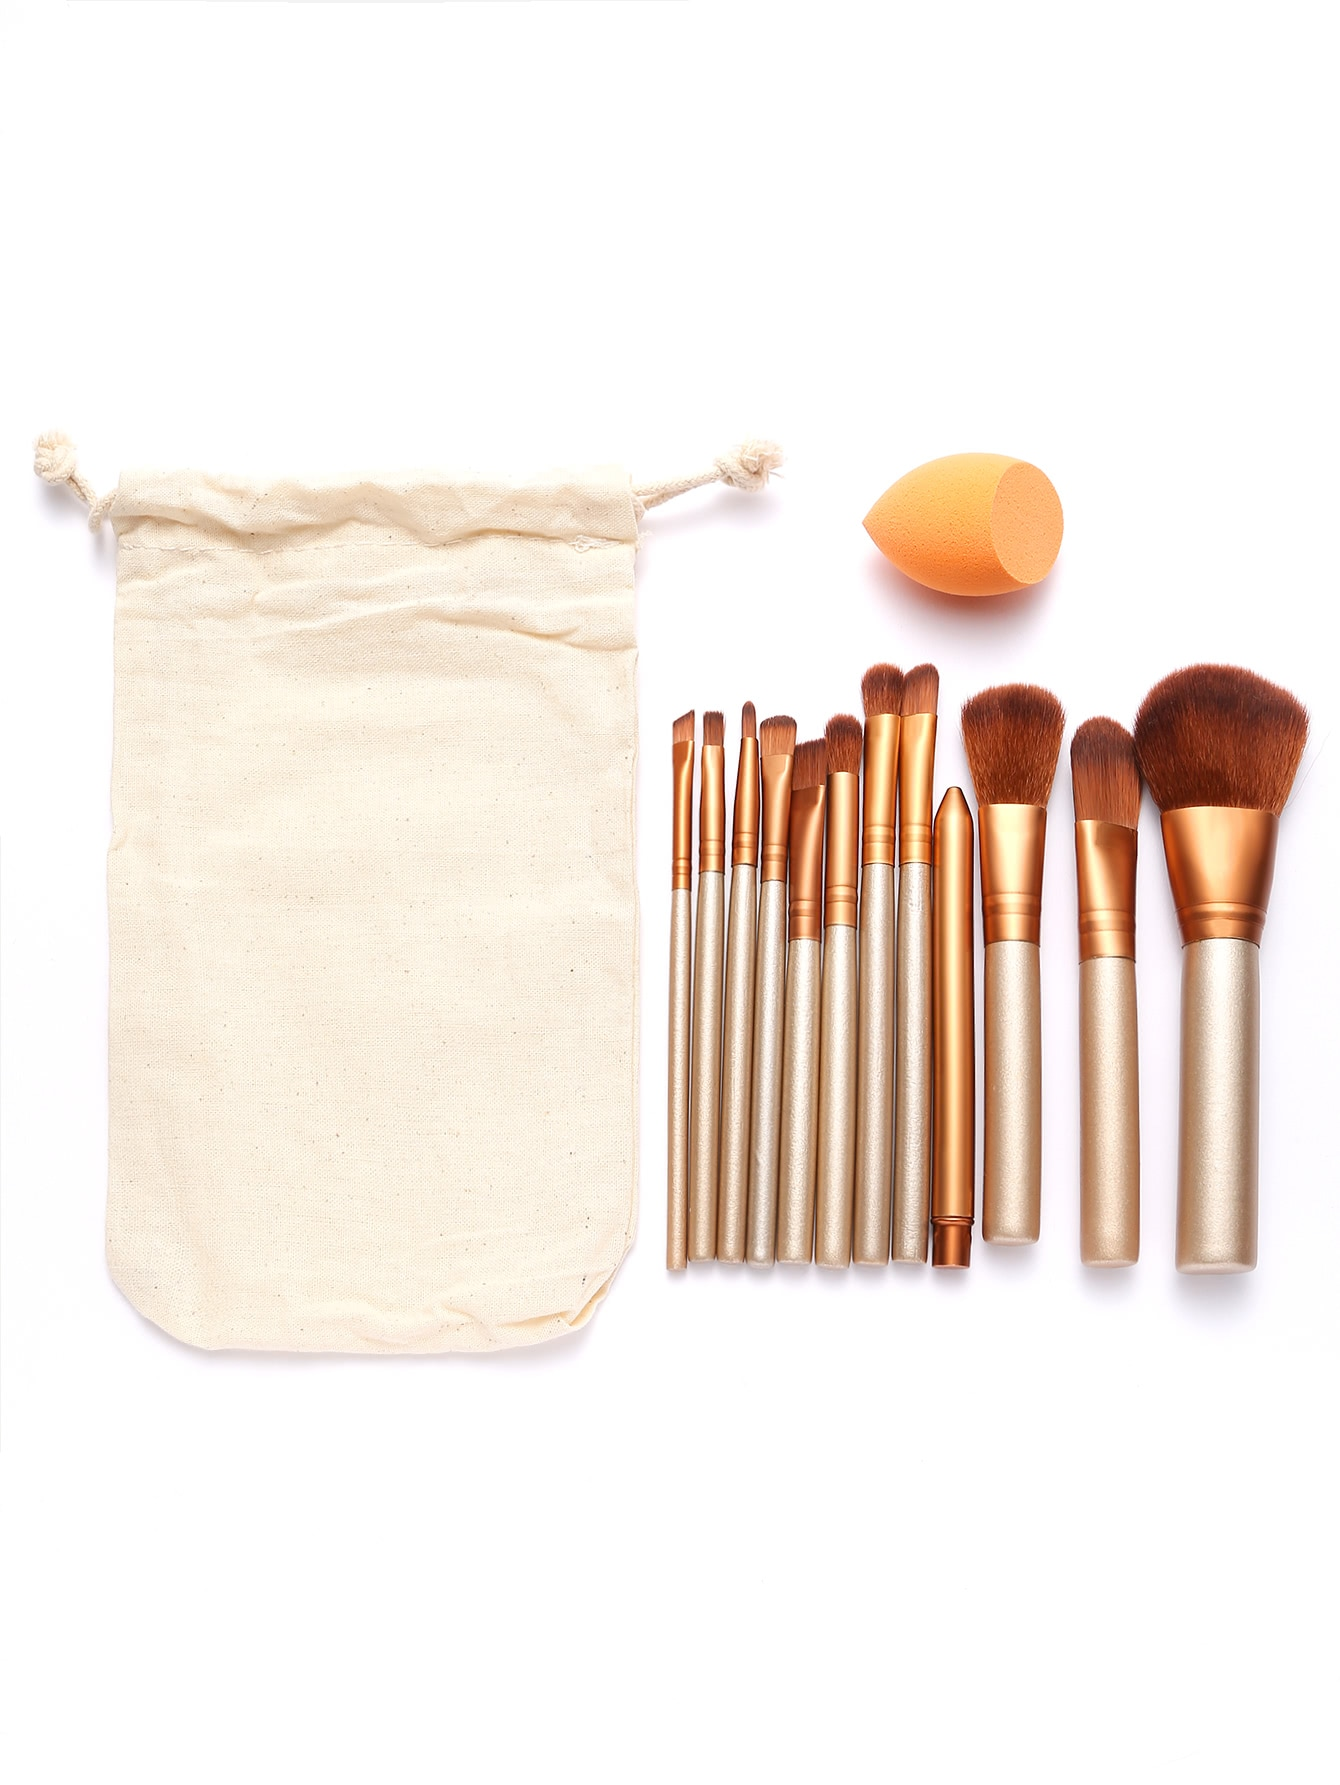 Image of 12Pcs Gold Professional Makeup Brush Set with Canvas Bag